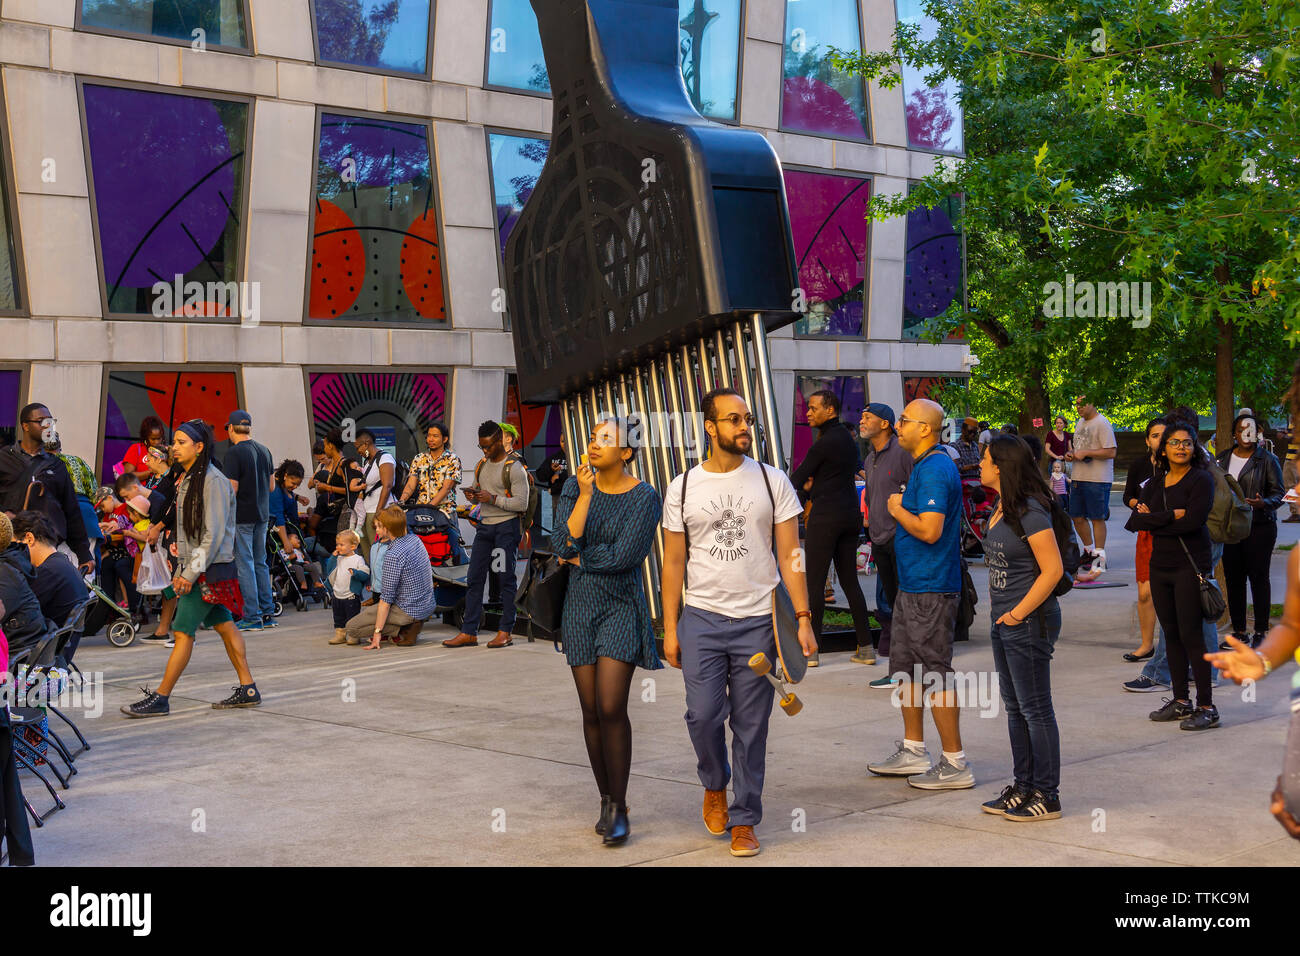 """Crowds around Hank Willis Thomas' """"All Power to All People"""" in the plaza of the Africa Center on Fifth Avenue at the edge of Harlem during the Museum Mile festival on Tuesday, June 11, 2019.   (© Richard B. Levine) - Stock Image"""